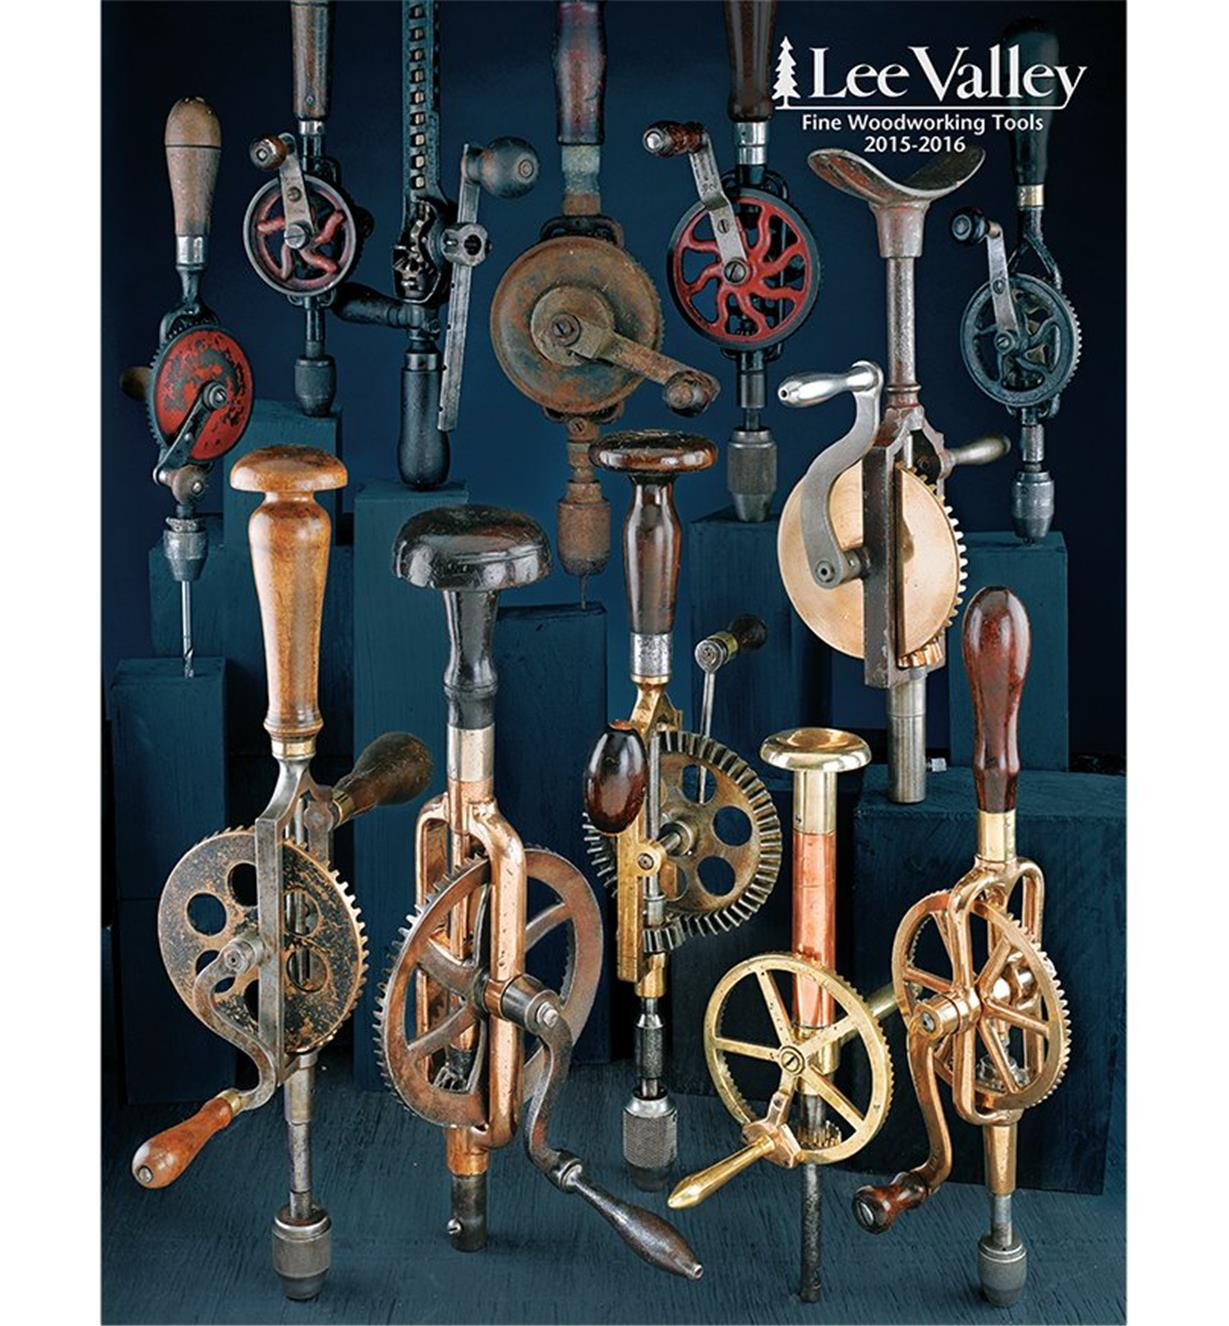 Fine Woodworking Tools 2015-2016 - Lee Valley Tools